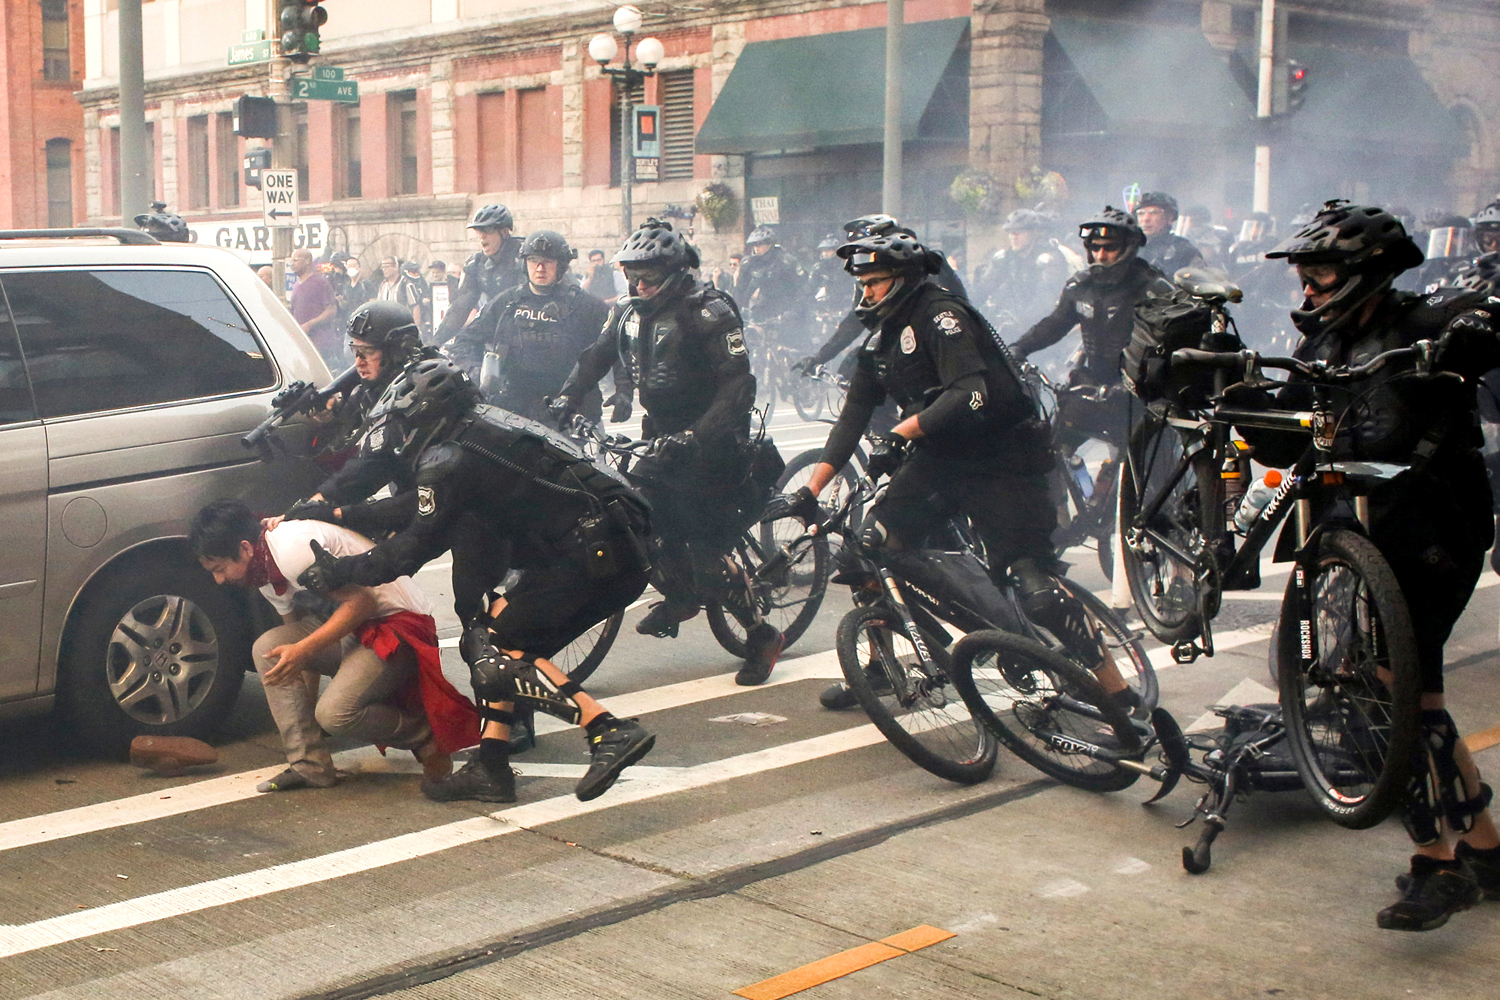 Police officers detain a protester during anti-capitalist protests following May Day marches in Seattle, Washington, U.S. May 1, 2016. REUTERS/David Ryder     TPX IMAGES OF THE DAY      - RTX2CDO2